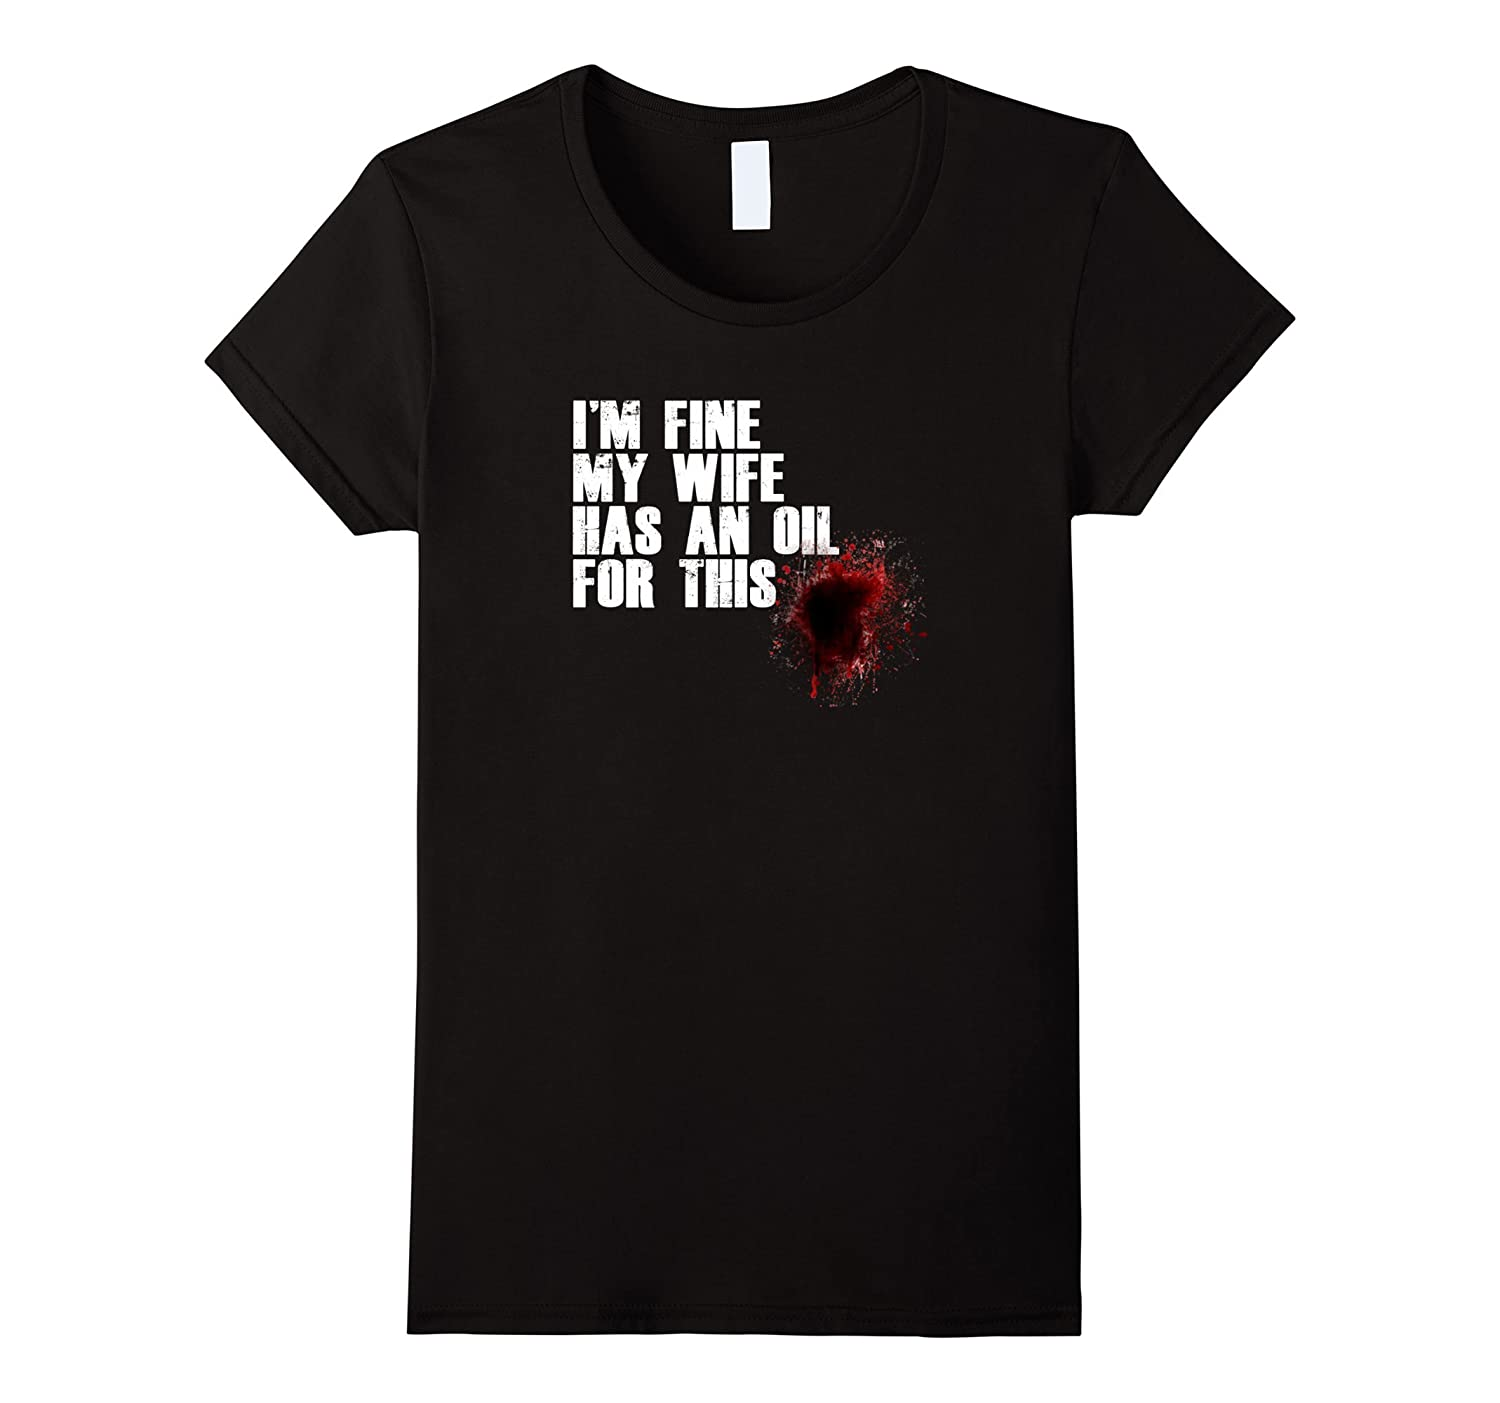 I'M FINE MY WIFE HAS AN OIL FOR THIS T-SHIRT